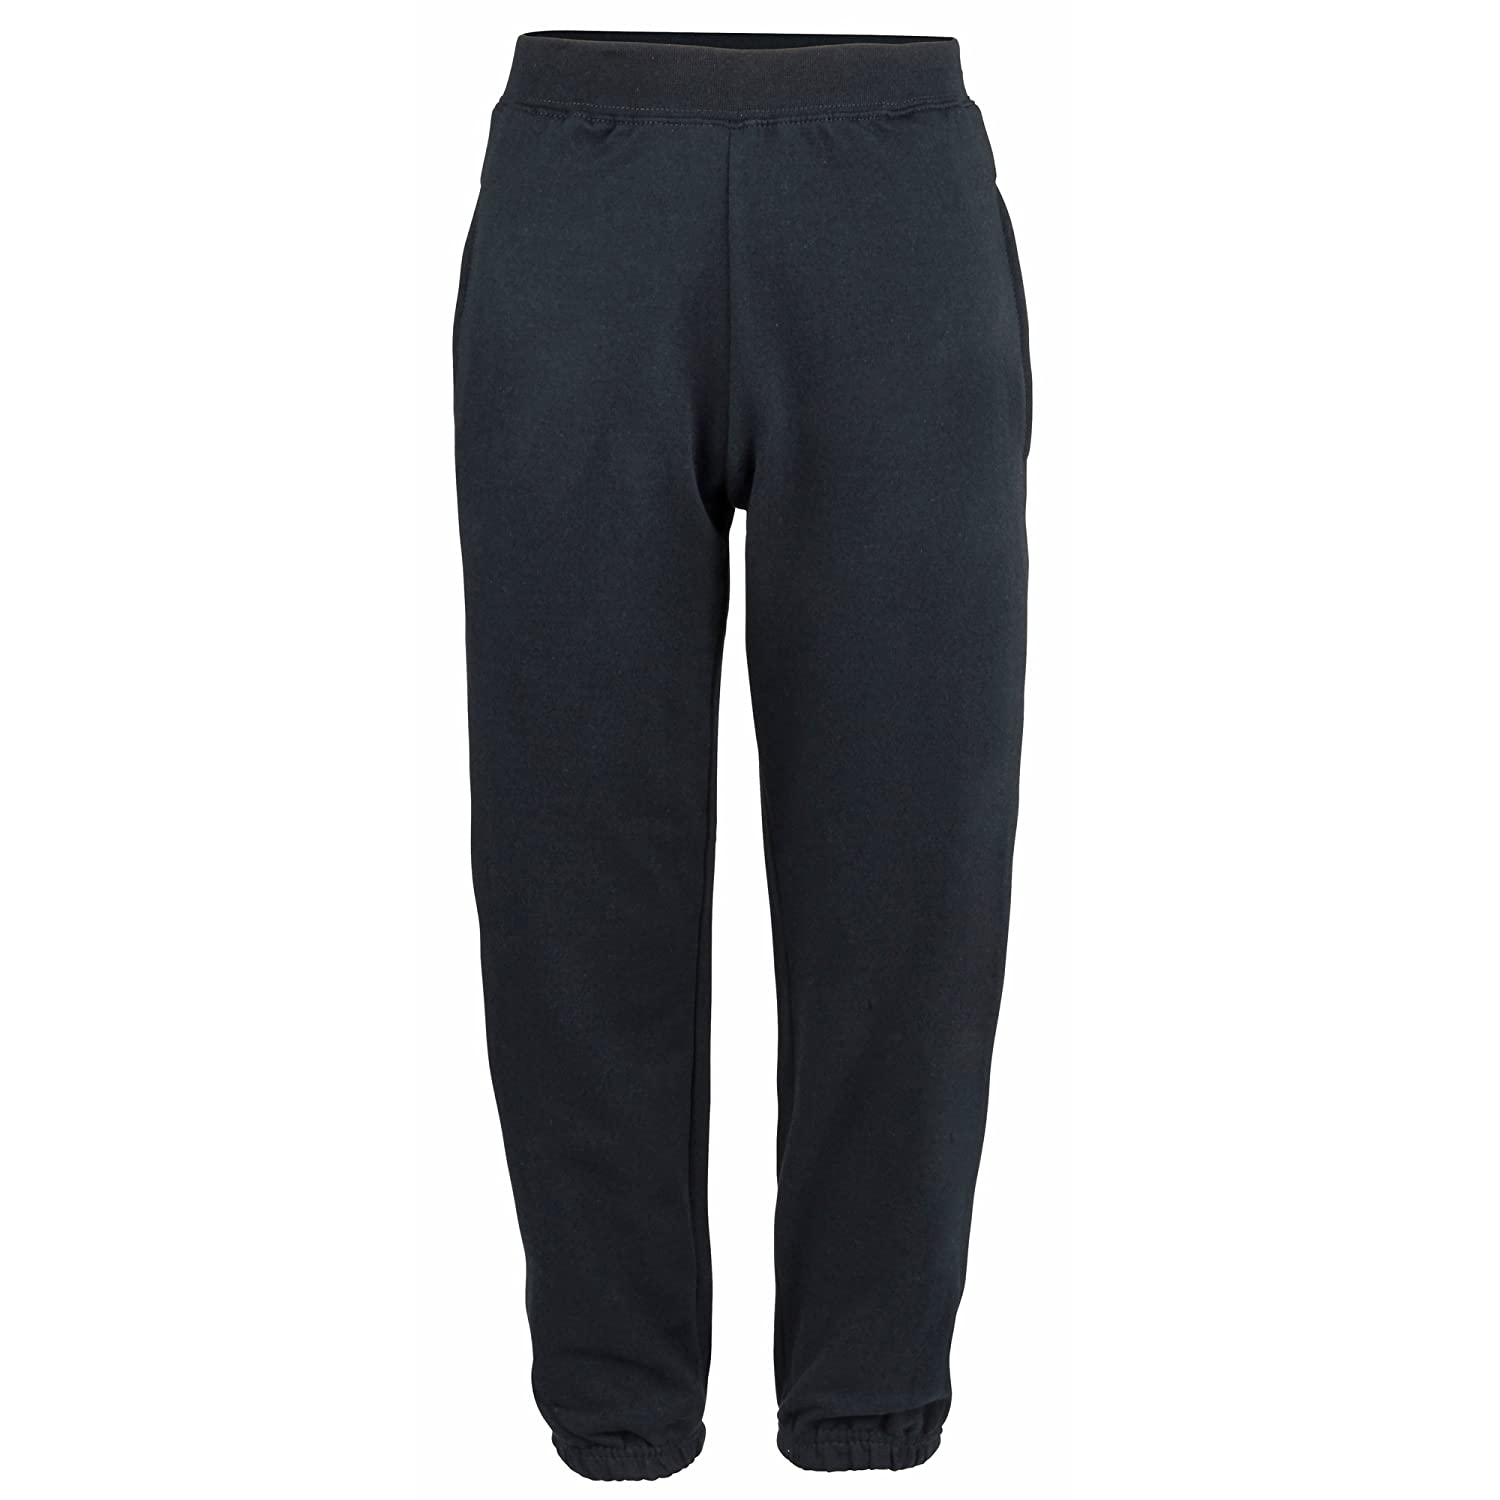 Awdis College Cuffed Sweatpants/Jogging Bottoms